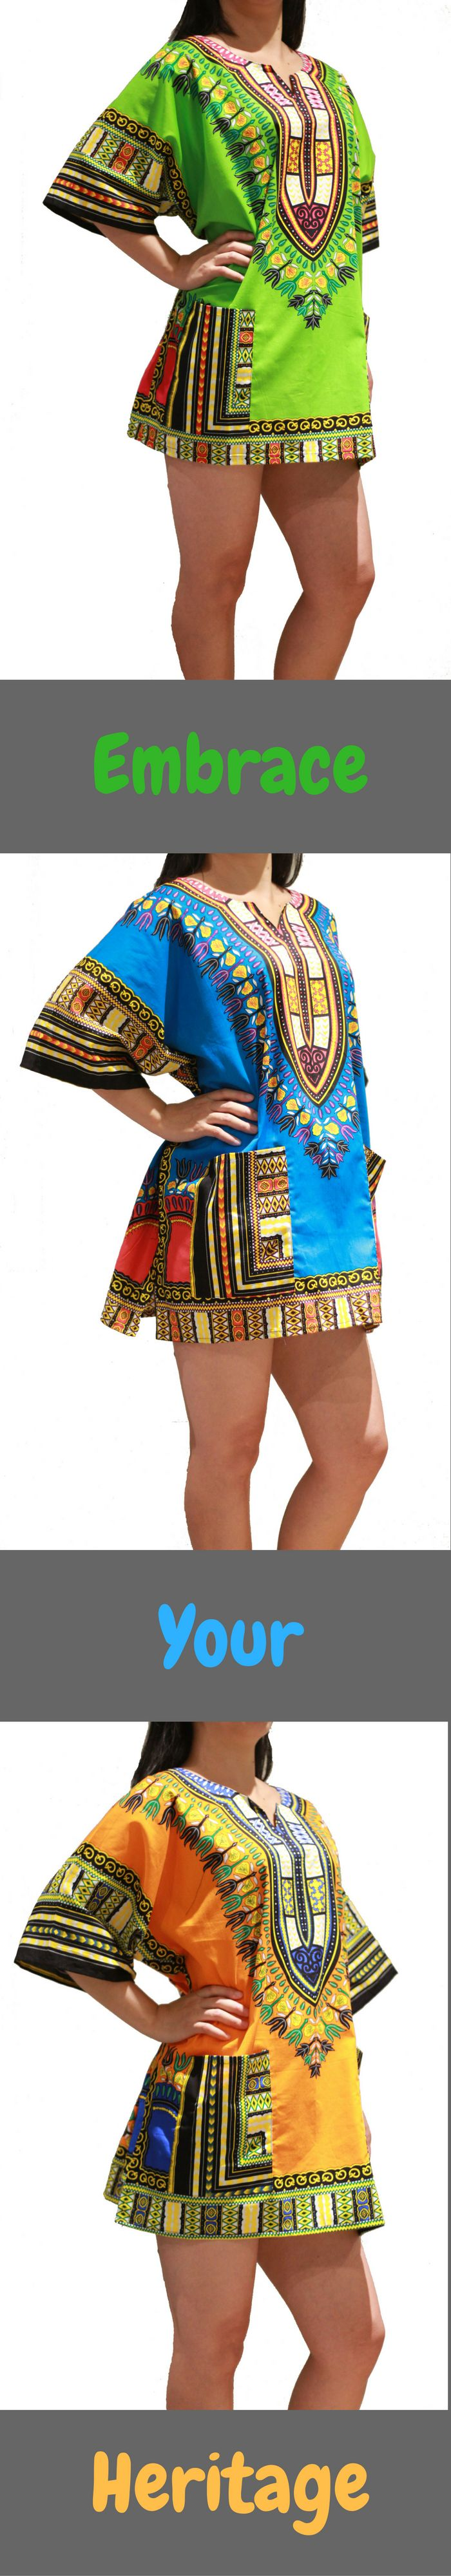 Embrace Your Heritage! Beautiful Vibrant African Dashiki Shirt or Dress for $12.95